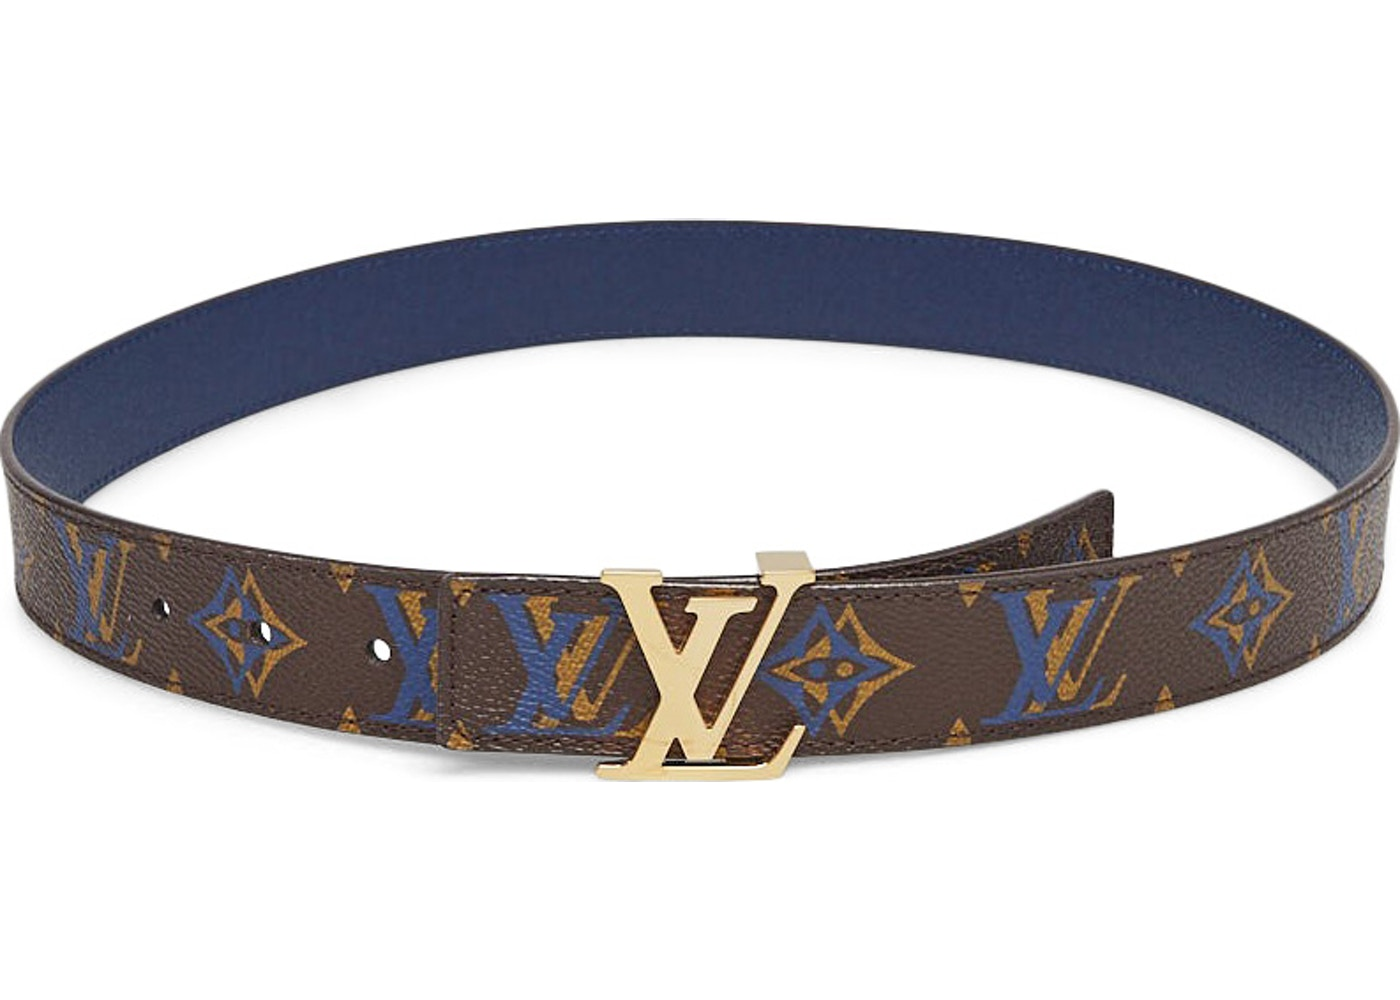 dff434b7f291 Sell. or Ask. Size  90 36. View All Bids. Louis Vuitton Belt LV Initiales  Reversible Monogram Rainbow Brown Blue